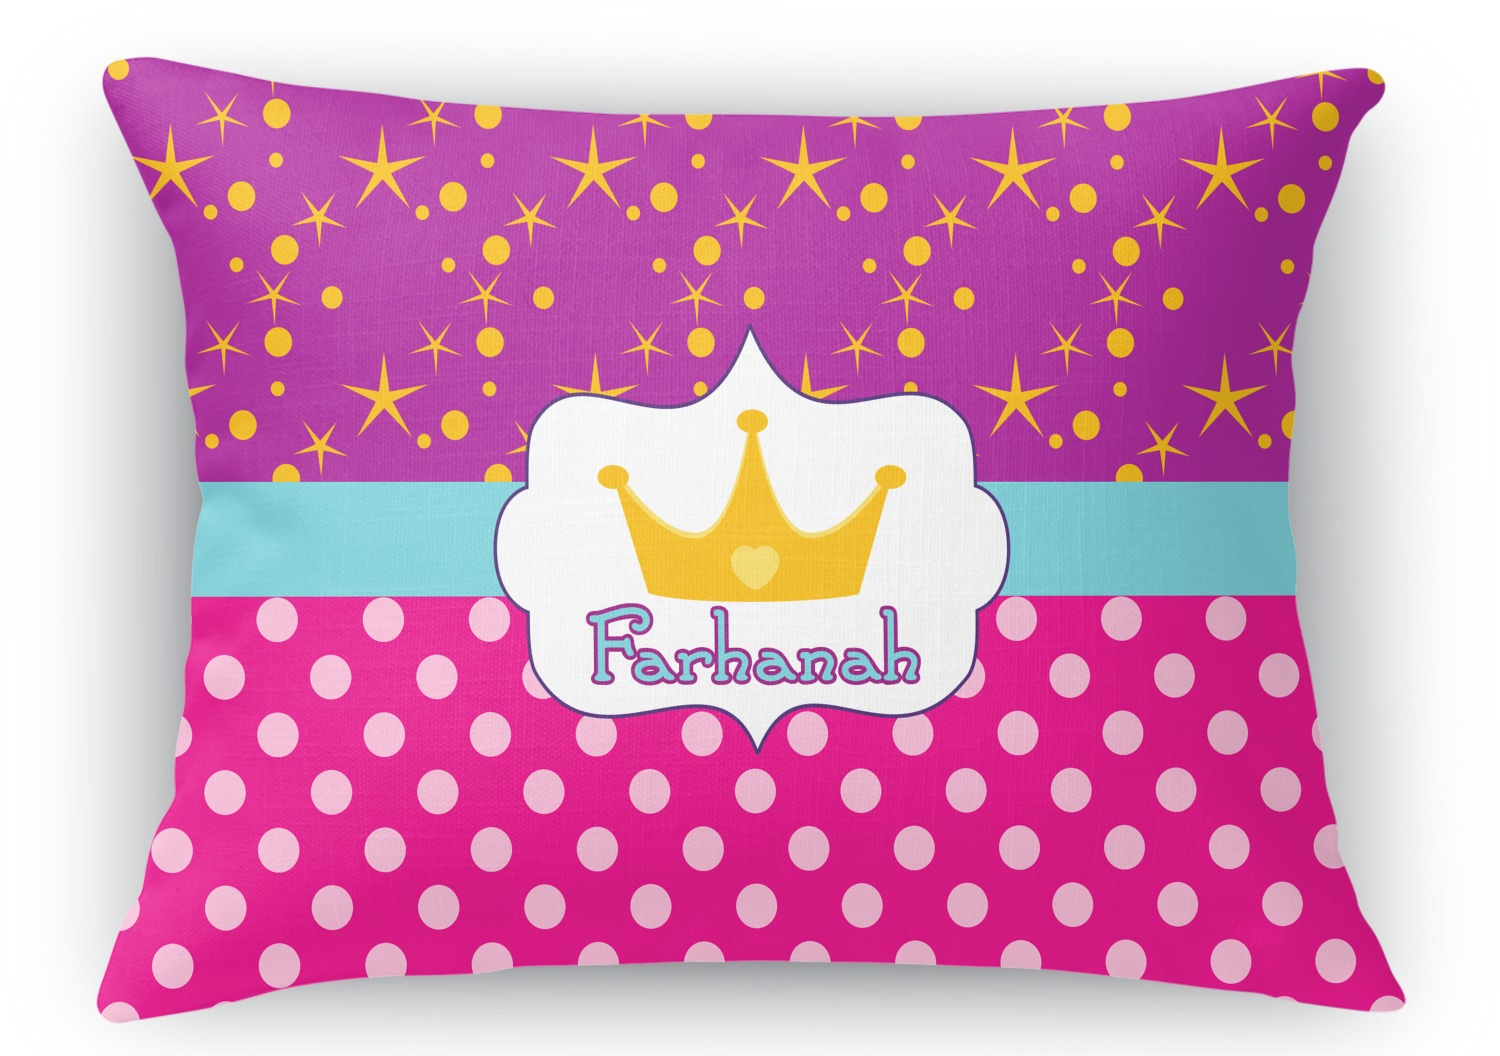 Rectangular Throw Pillow Dimensions : Sparkle & Dots Rectangular Throw Pillow - 18